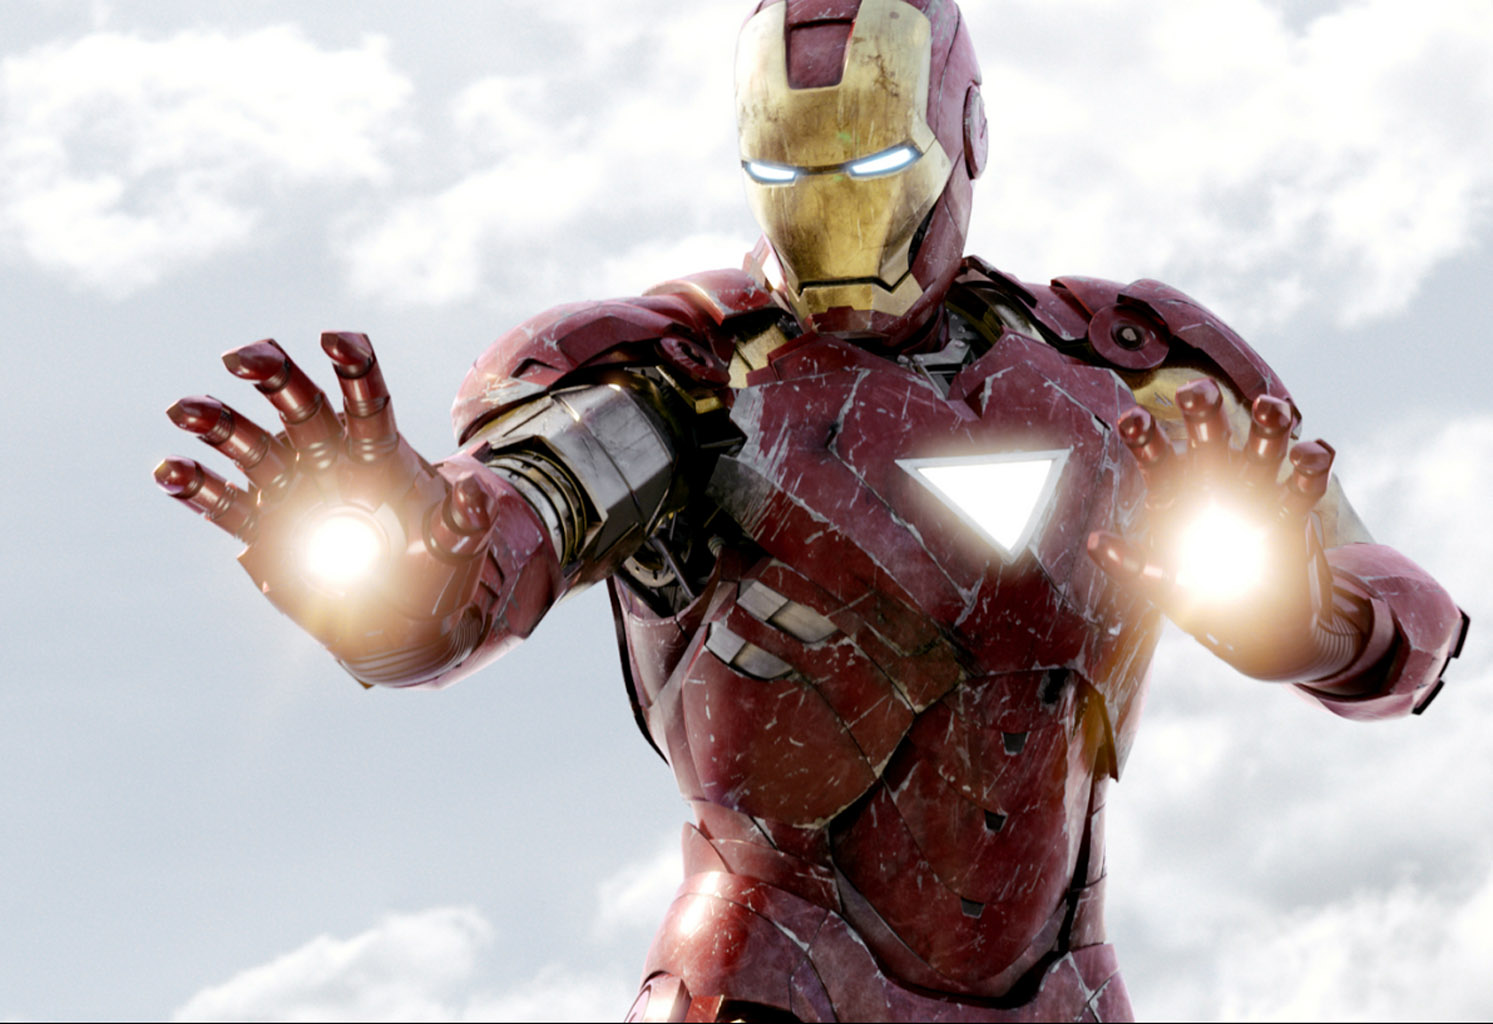 Avengers Wallpapers HD The Avengers Iron Man HD Wallpapers 1493x1024